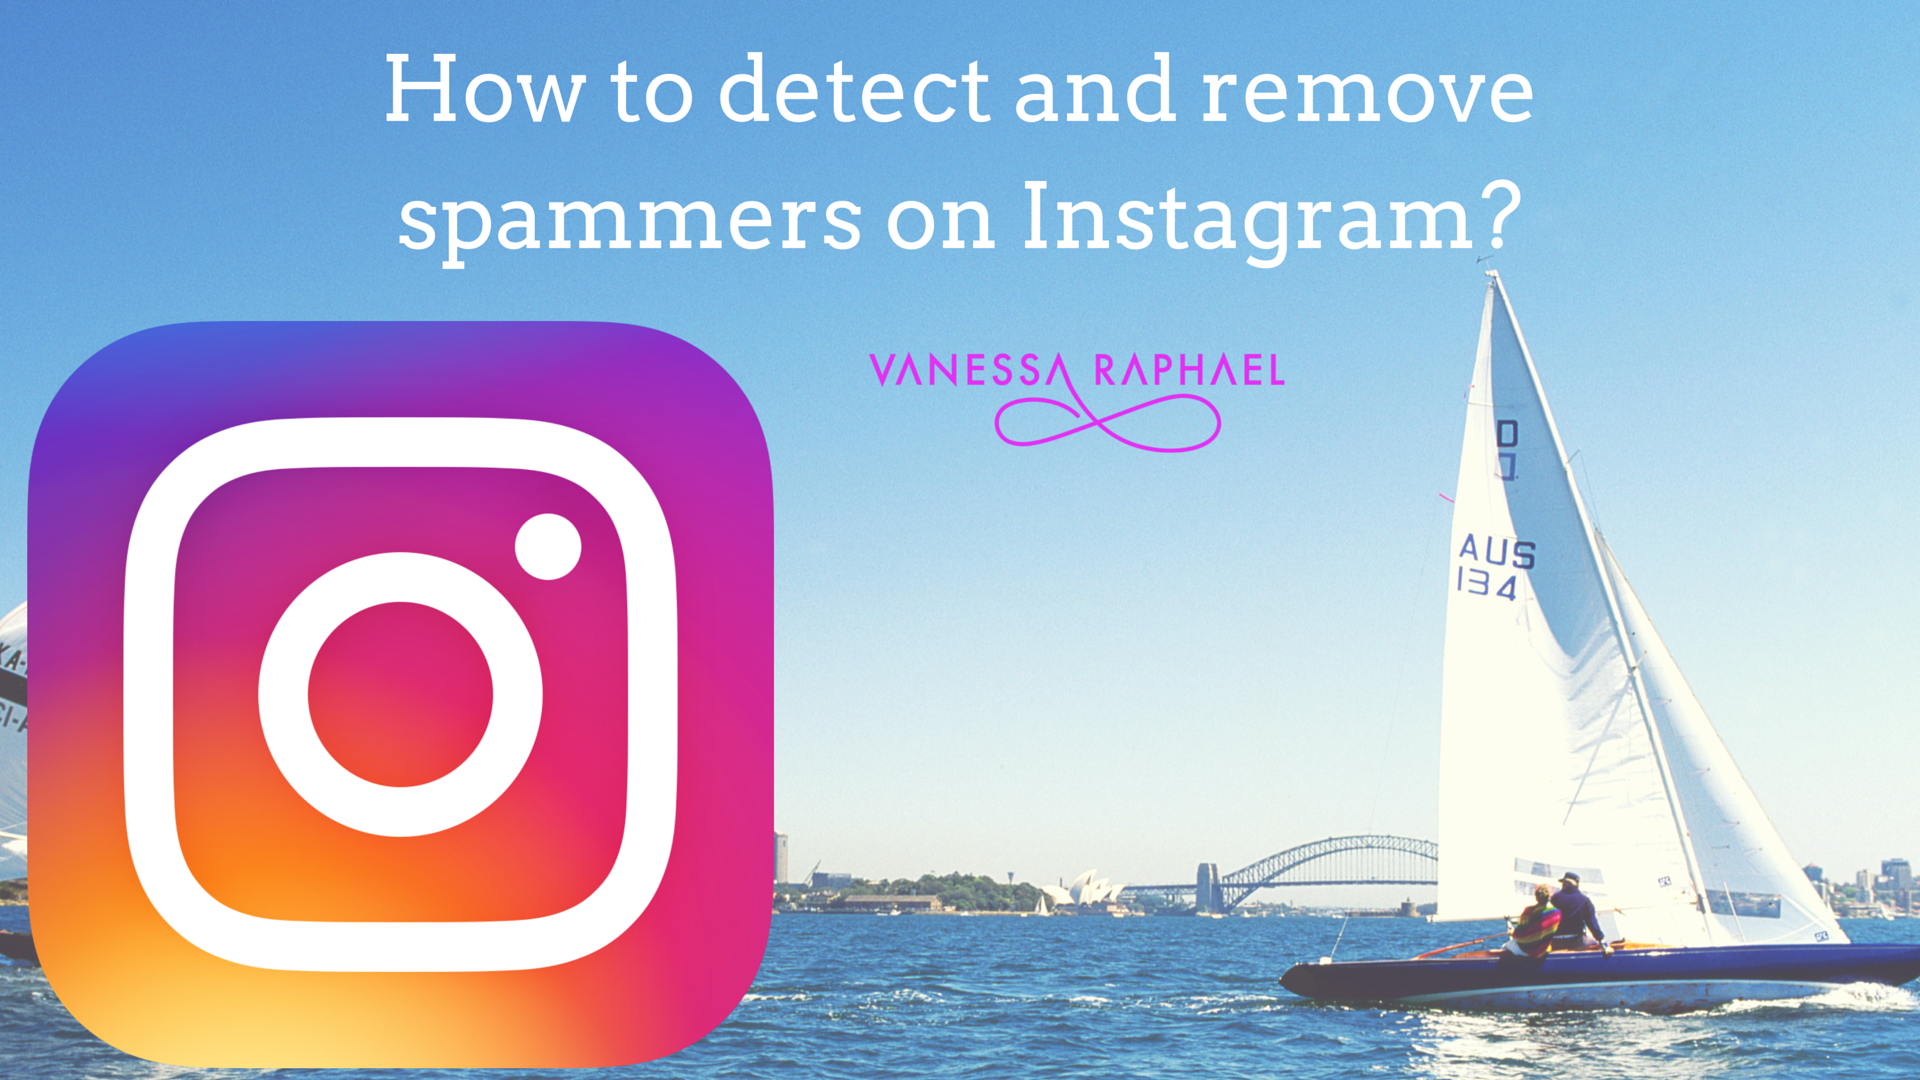 How To Detect And Remove Spammers On Instagram